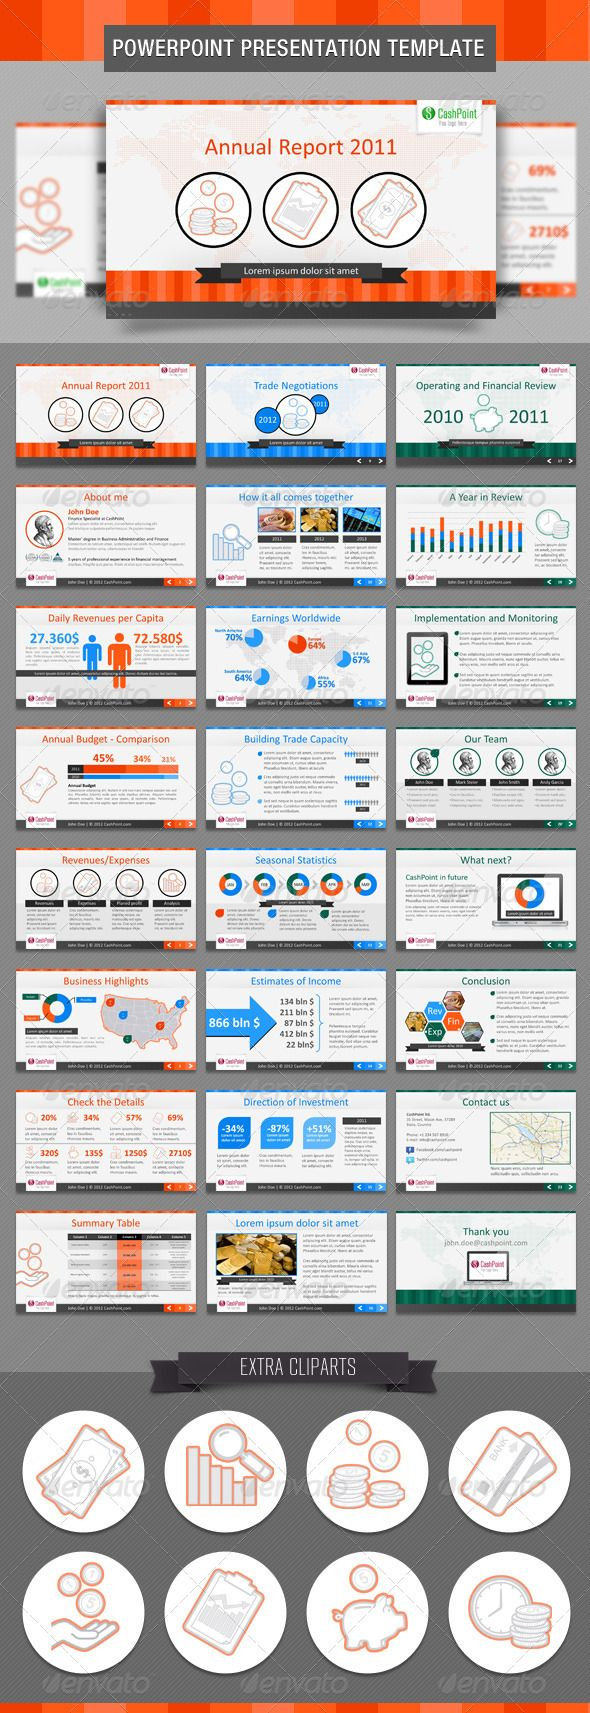 109 best [biz] presentations images on pinterest | project, Presentation templates